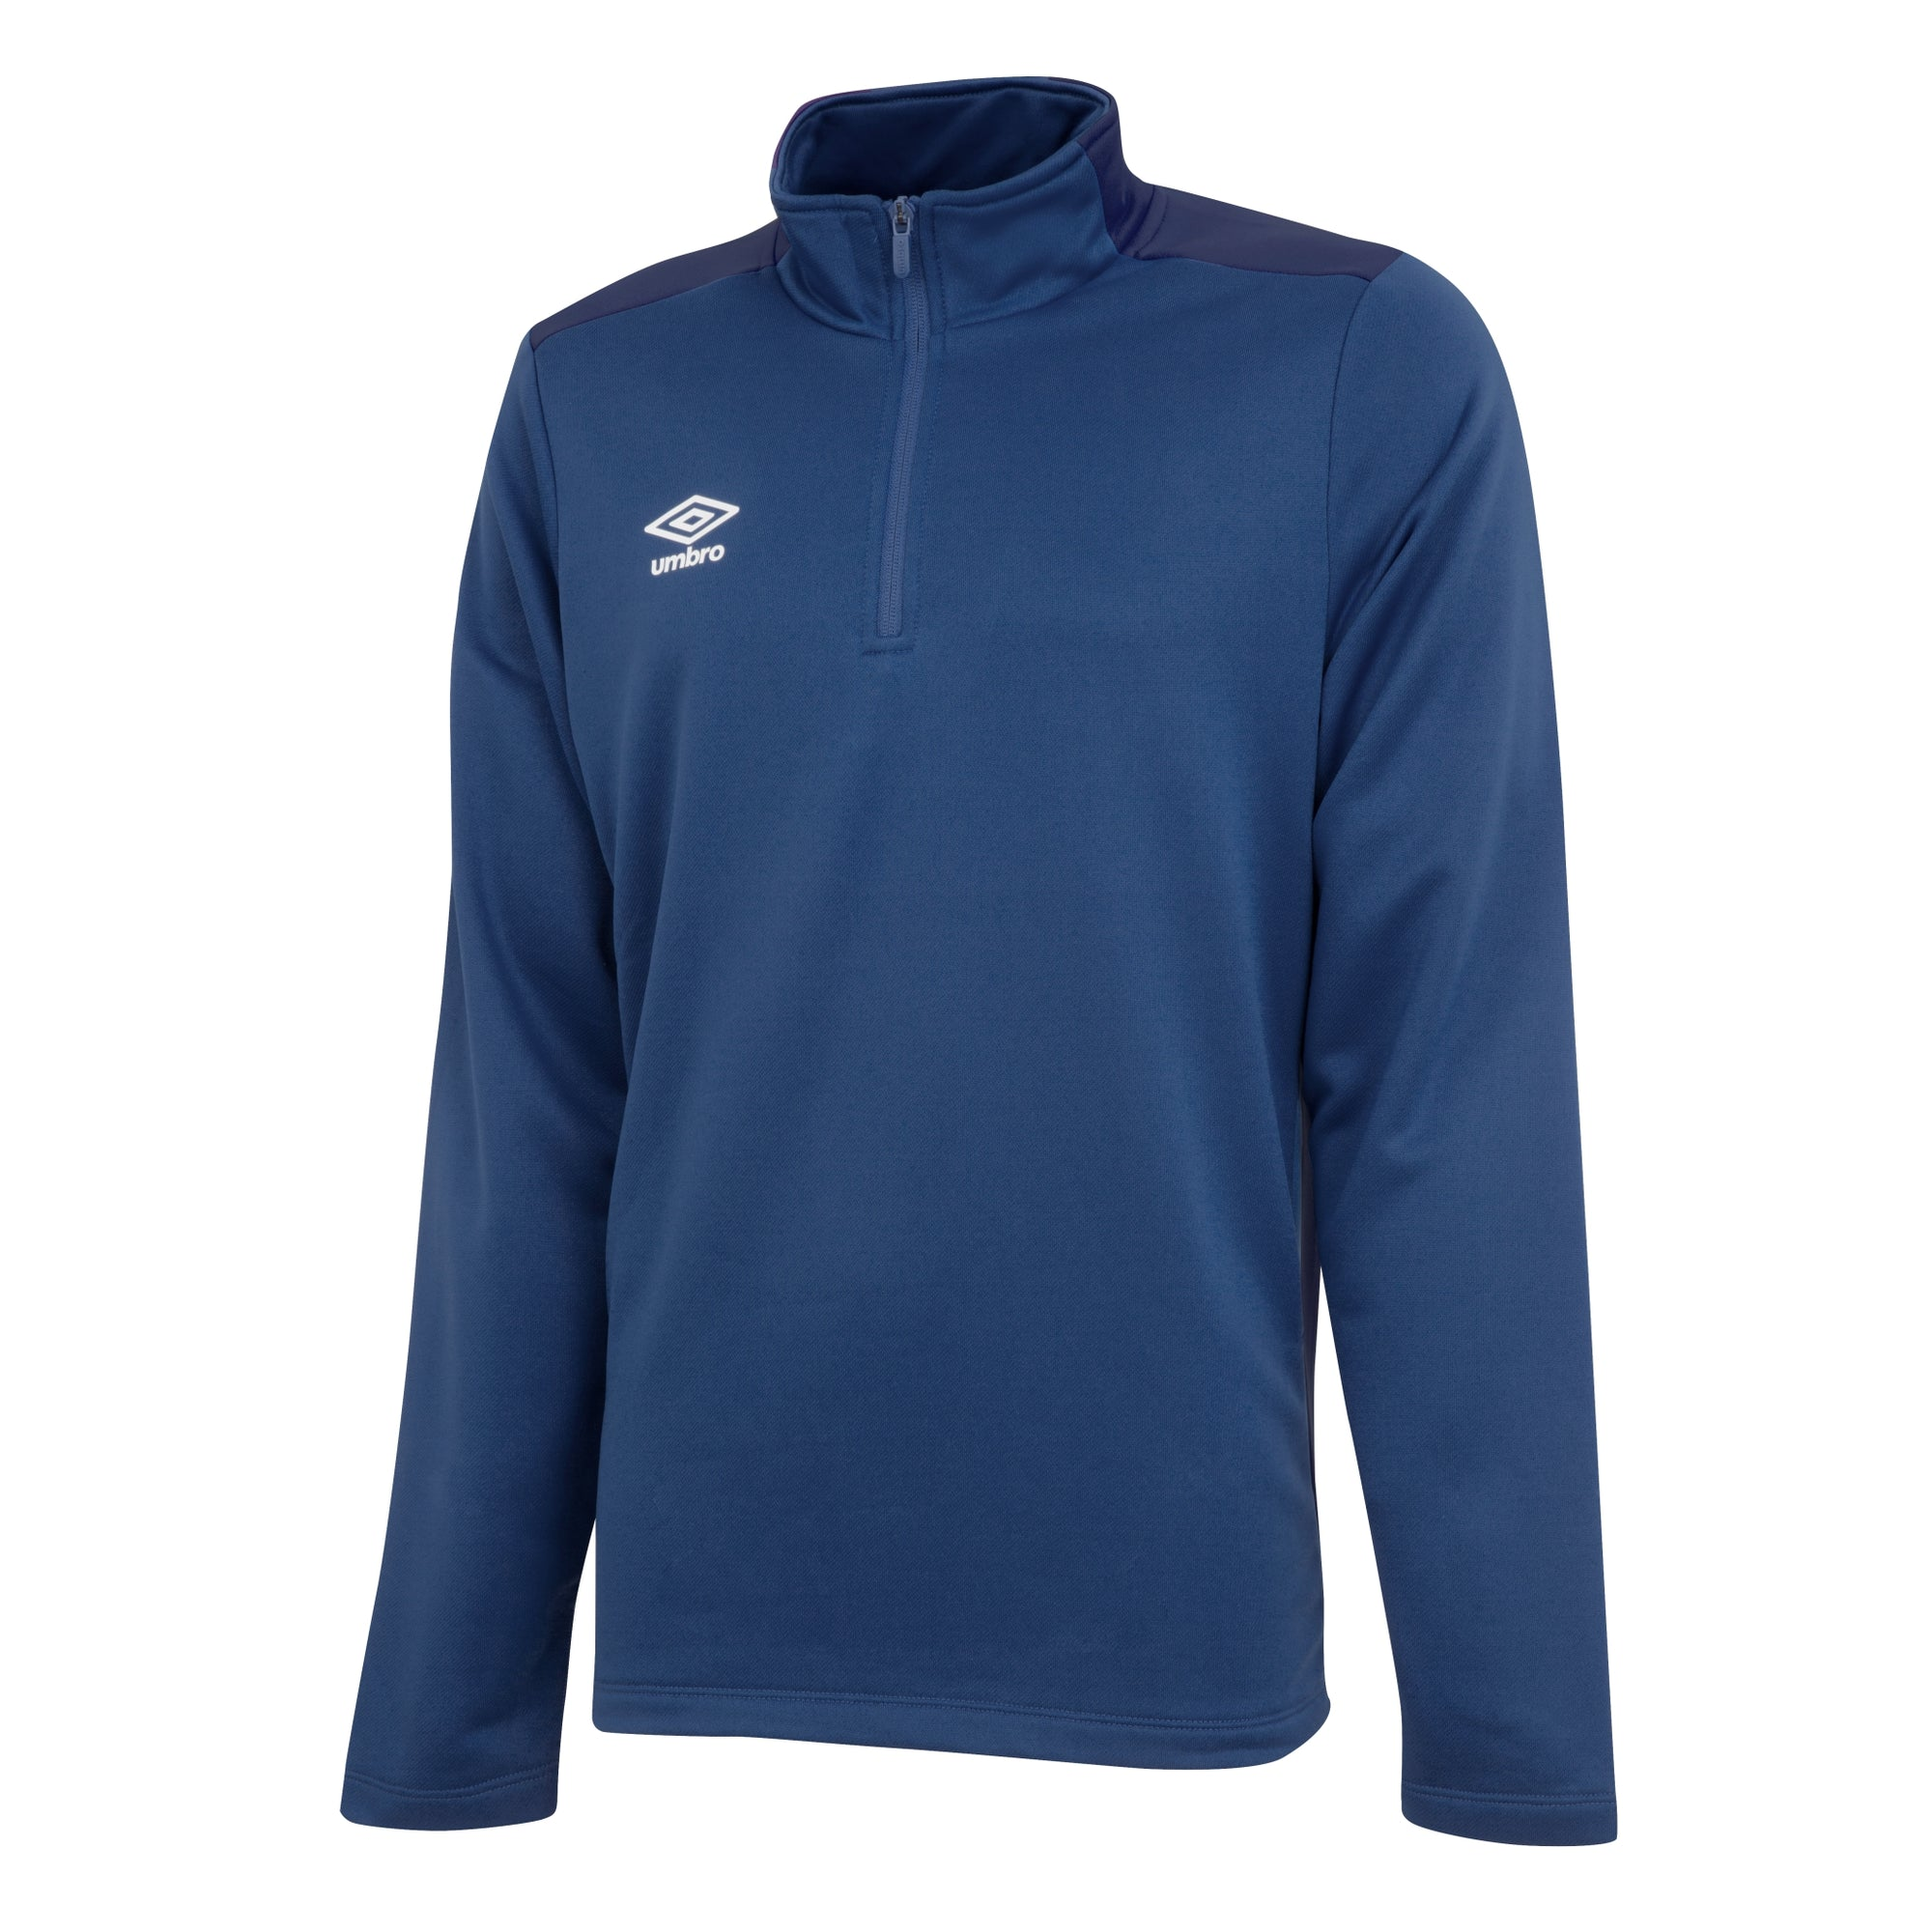 Umbro 1/2 zip top in TW navy/dark navy.